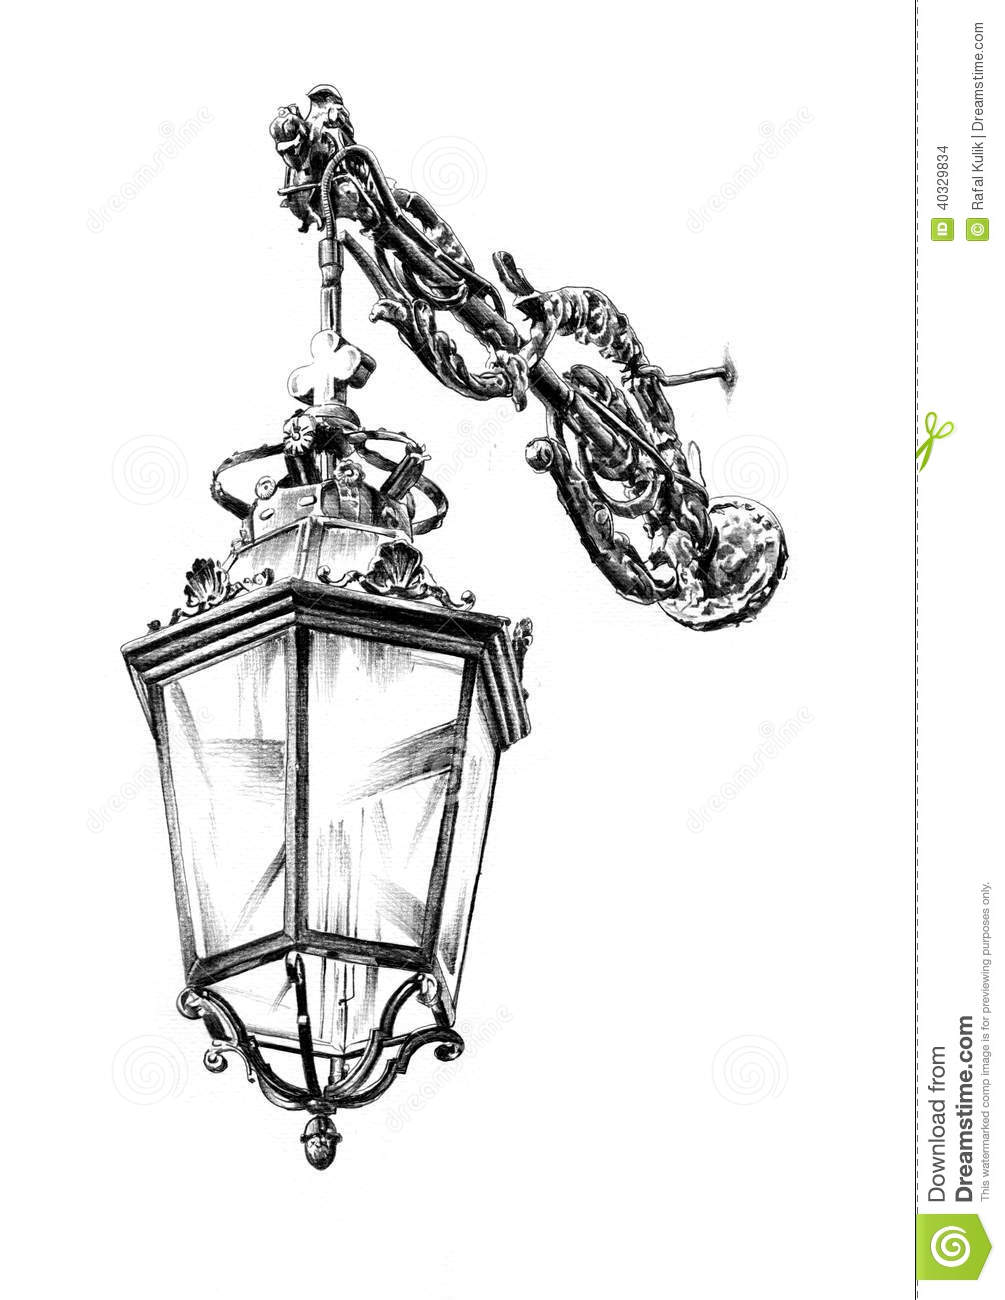 Antique Street Lantern Drawing Handmade Stock Illustration Illustration Of Iron Drawing 40329834